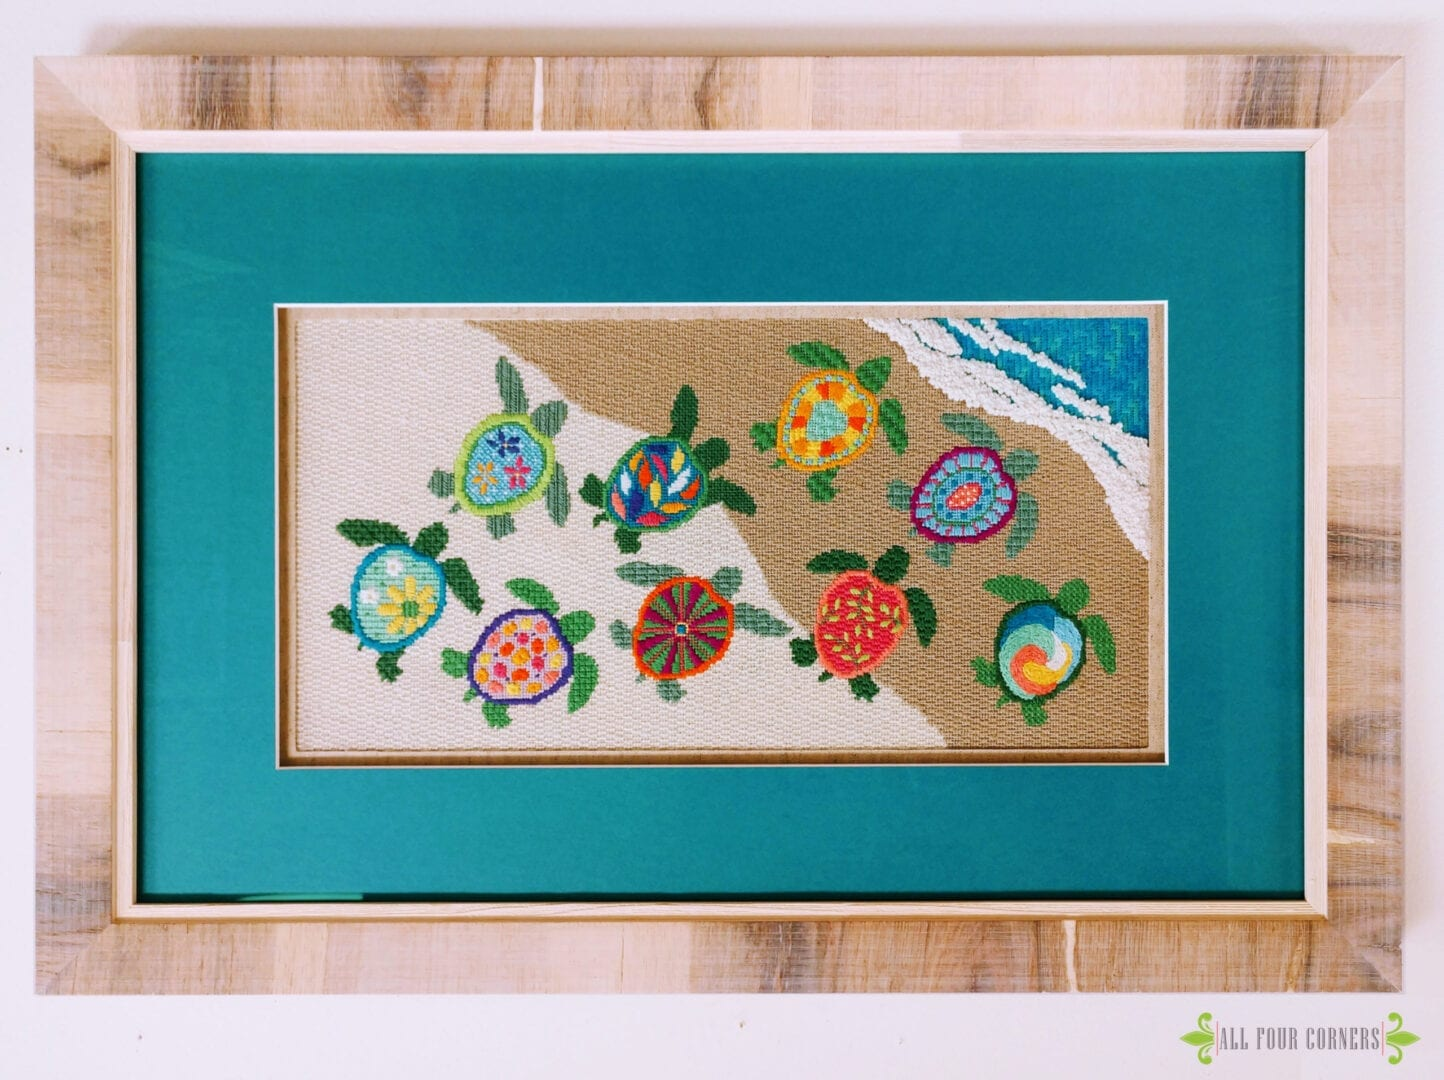 framed turtle needle point with turquoise mat and heavy wood grain frame.